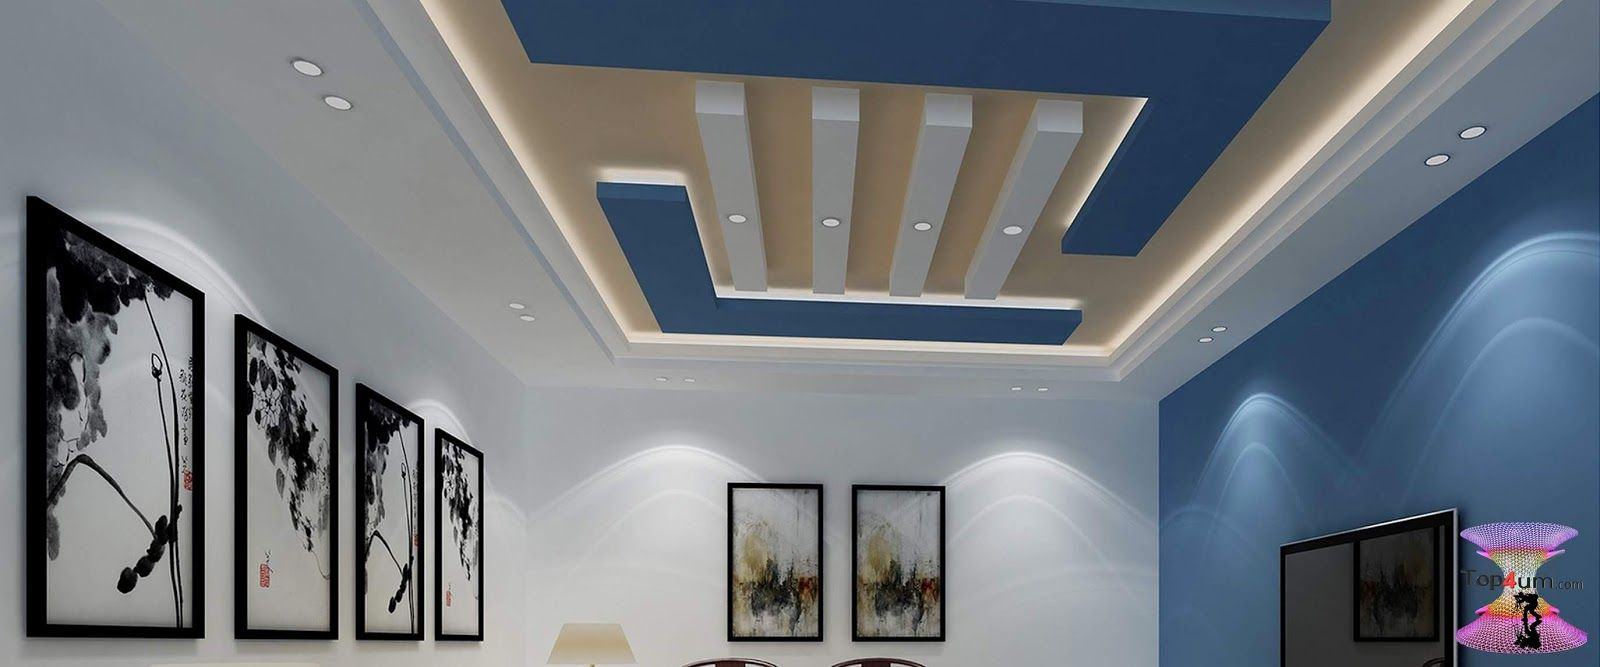 افضل ديكورات جبس اسقف راقيه 2019 Modern Gypsum Board For Walls And Ceilings Gypsum Board Decor Interior Design Interior Design